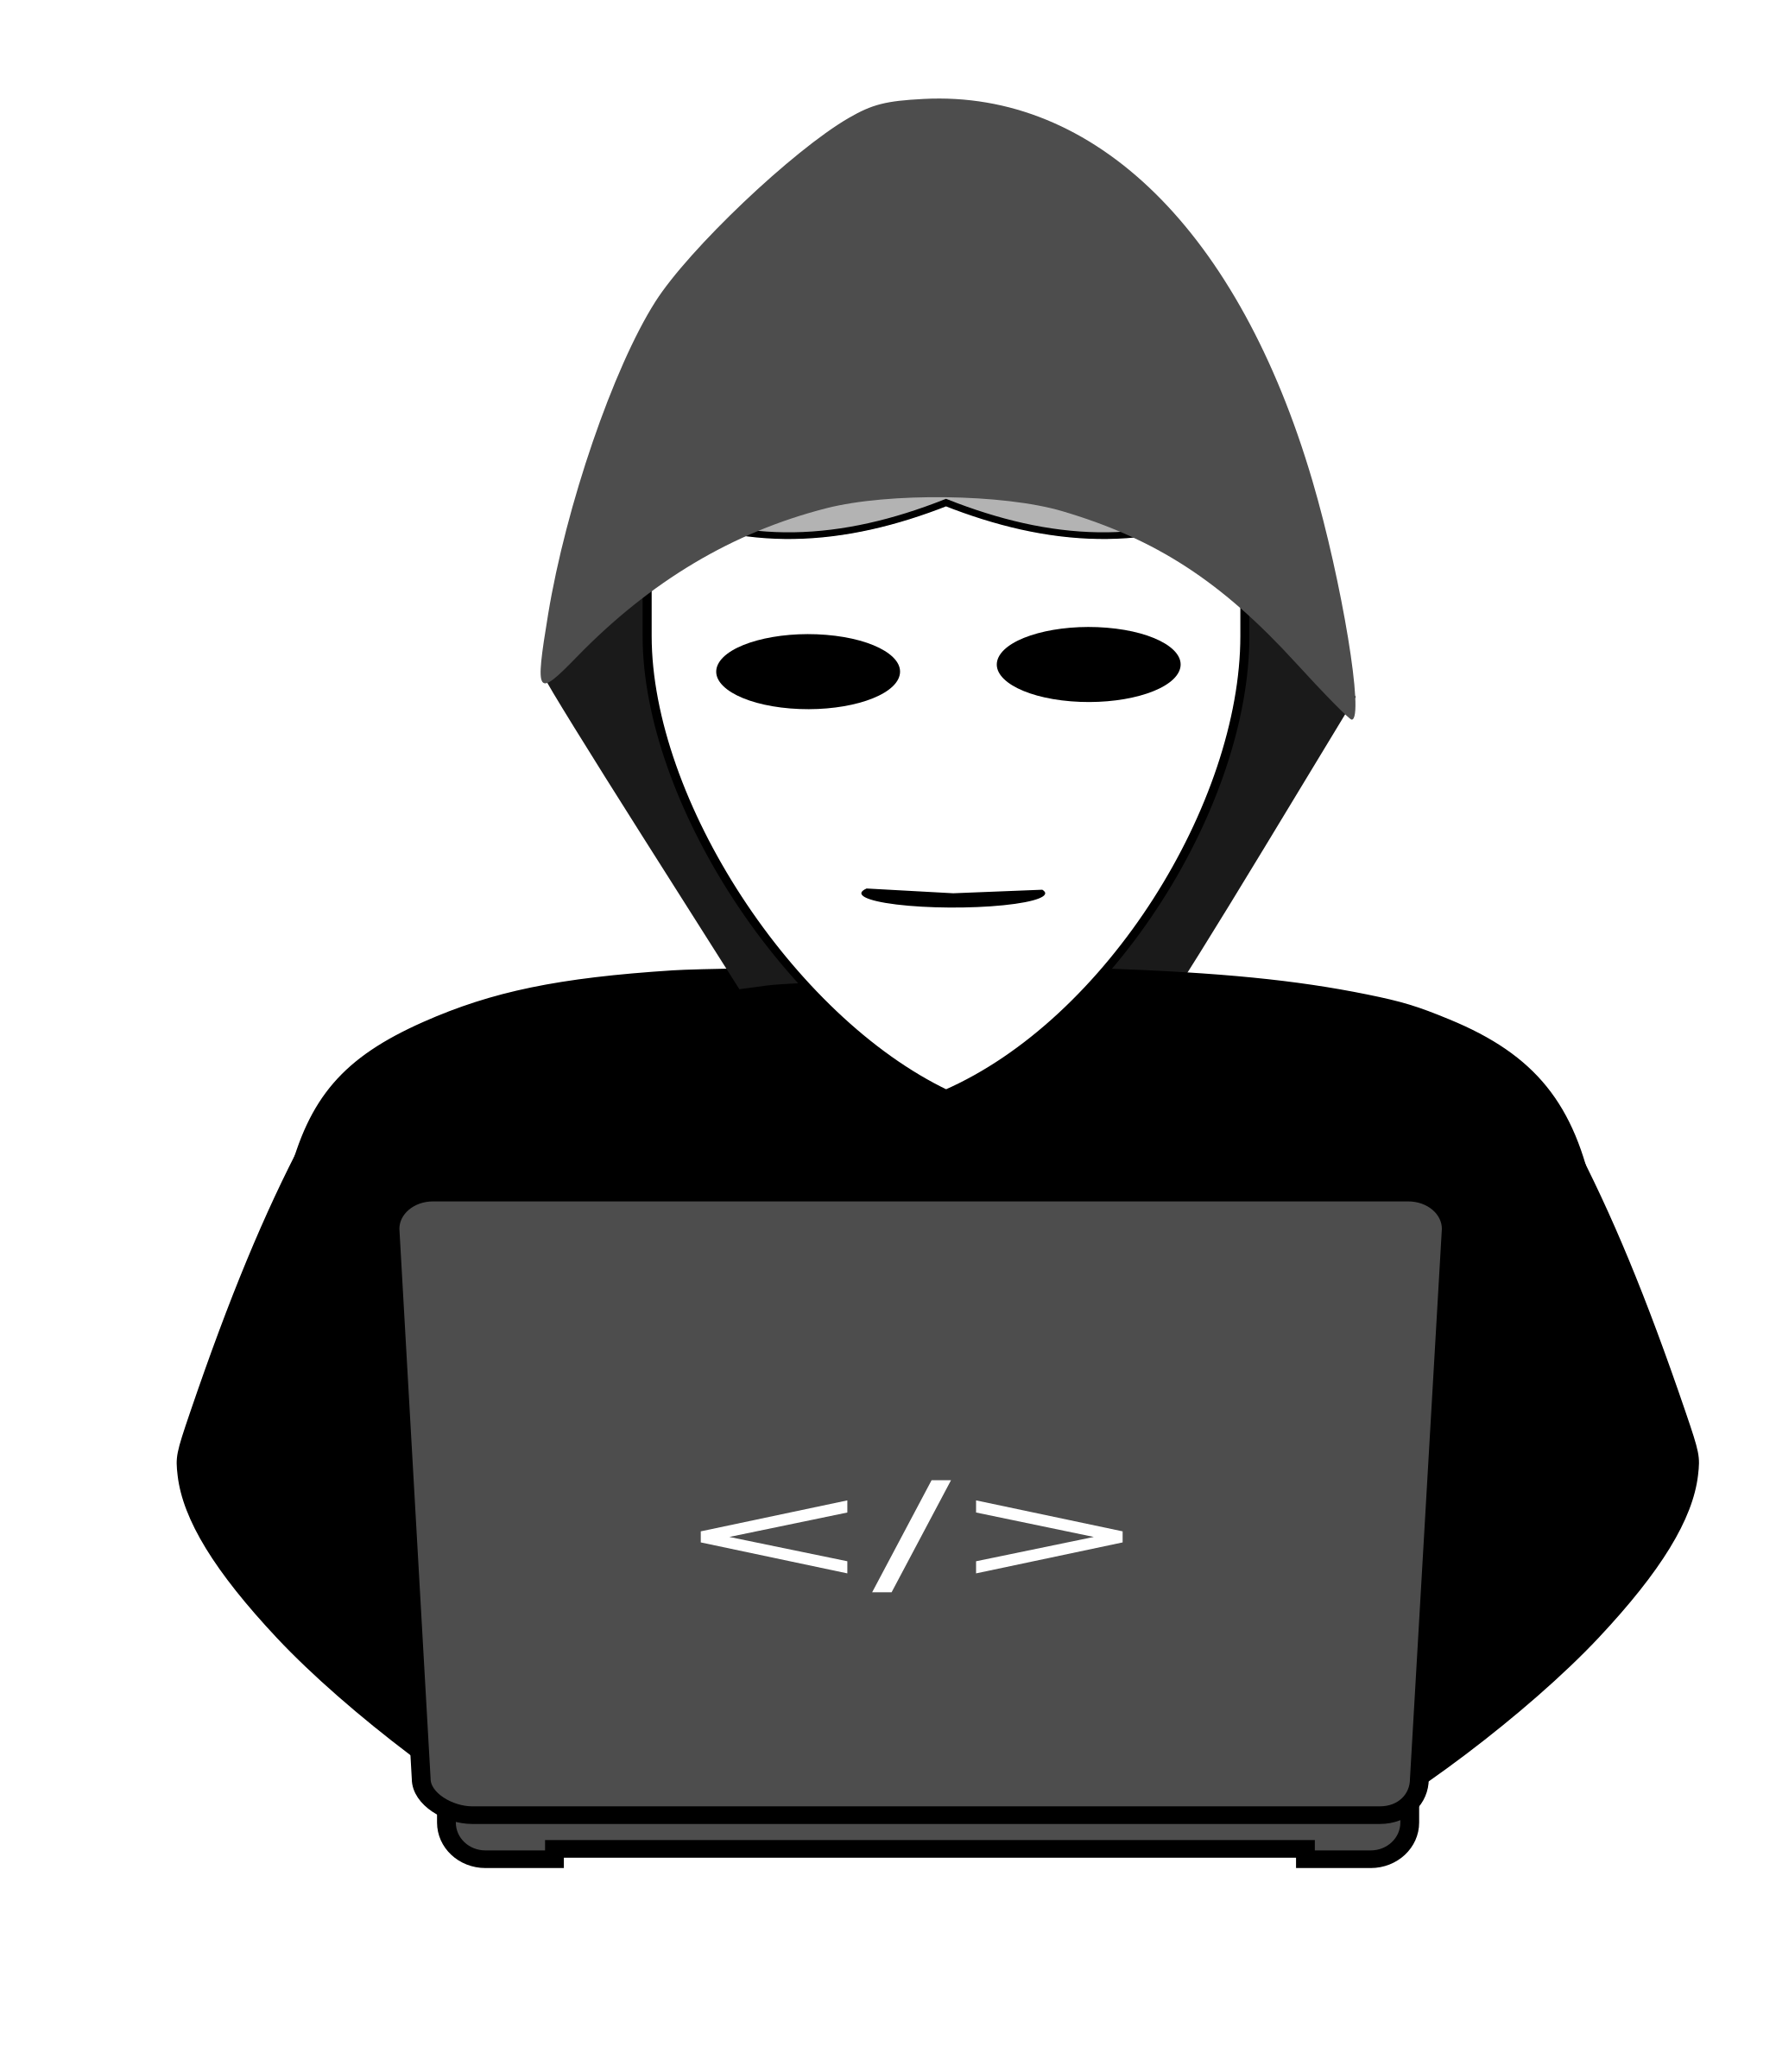 Computer clipart character. Anonymous hacker behind pc